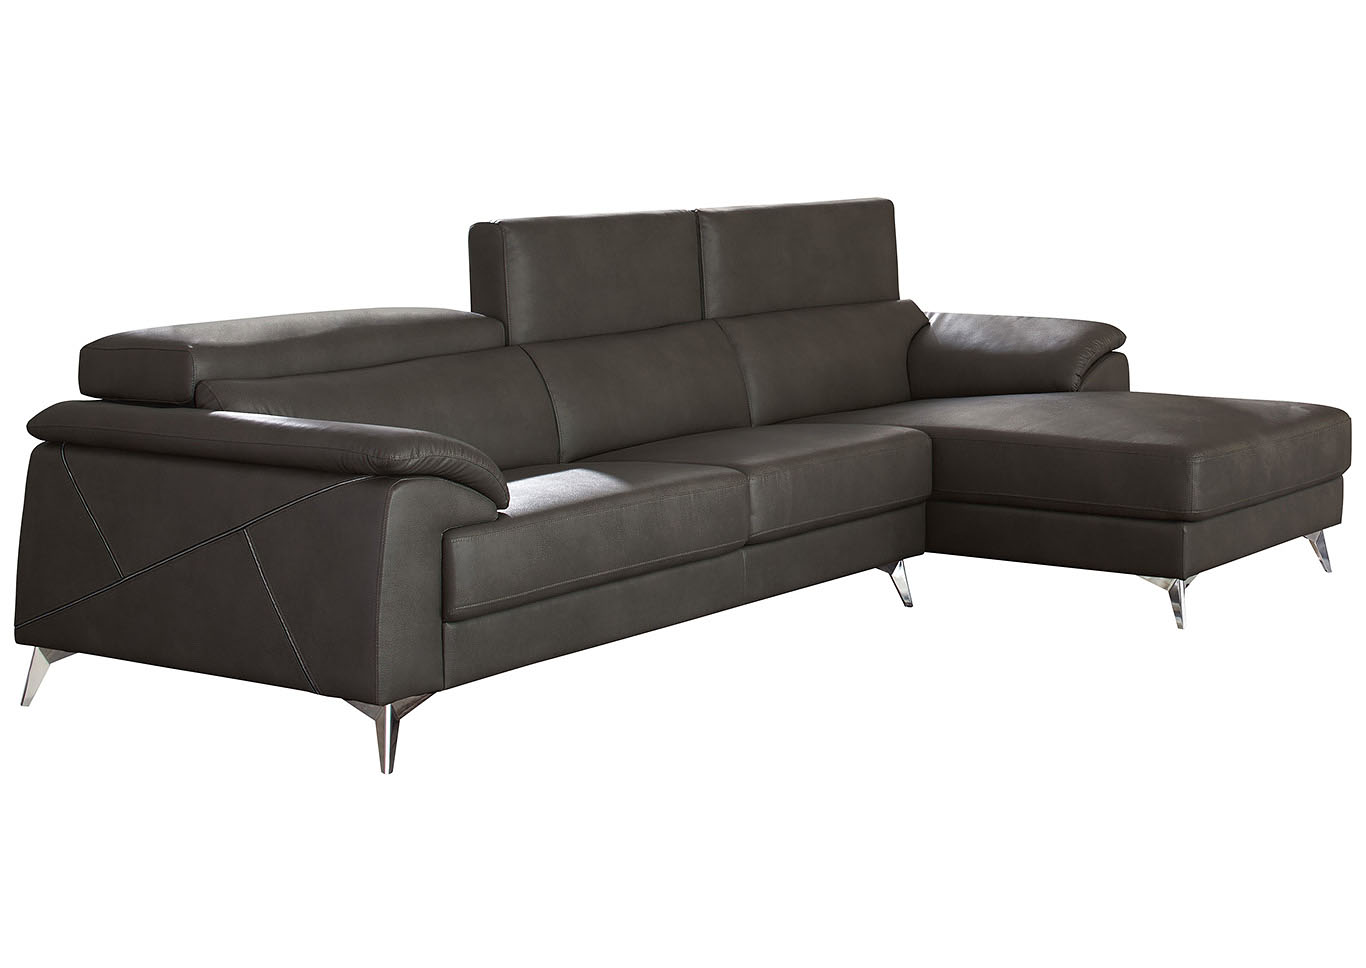 Tindell Gray Left Facing Loveseat Chaise Sectional,Signature Design By Ashley